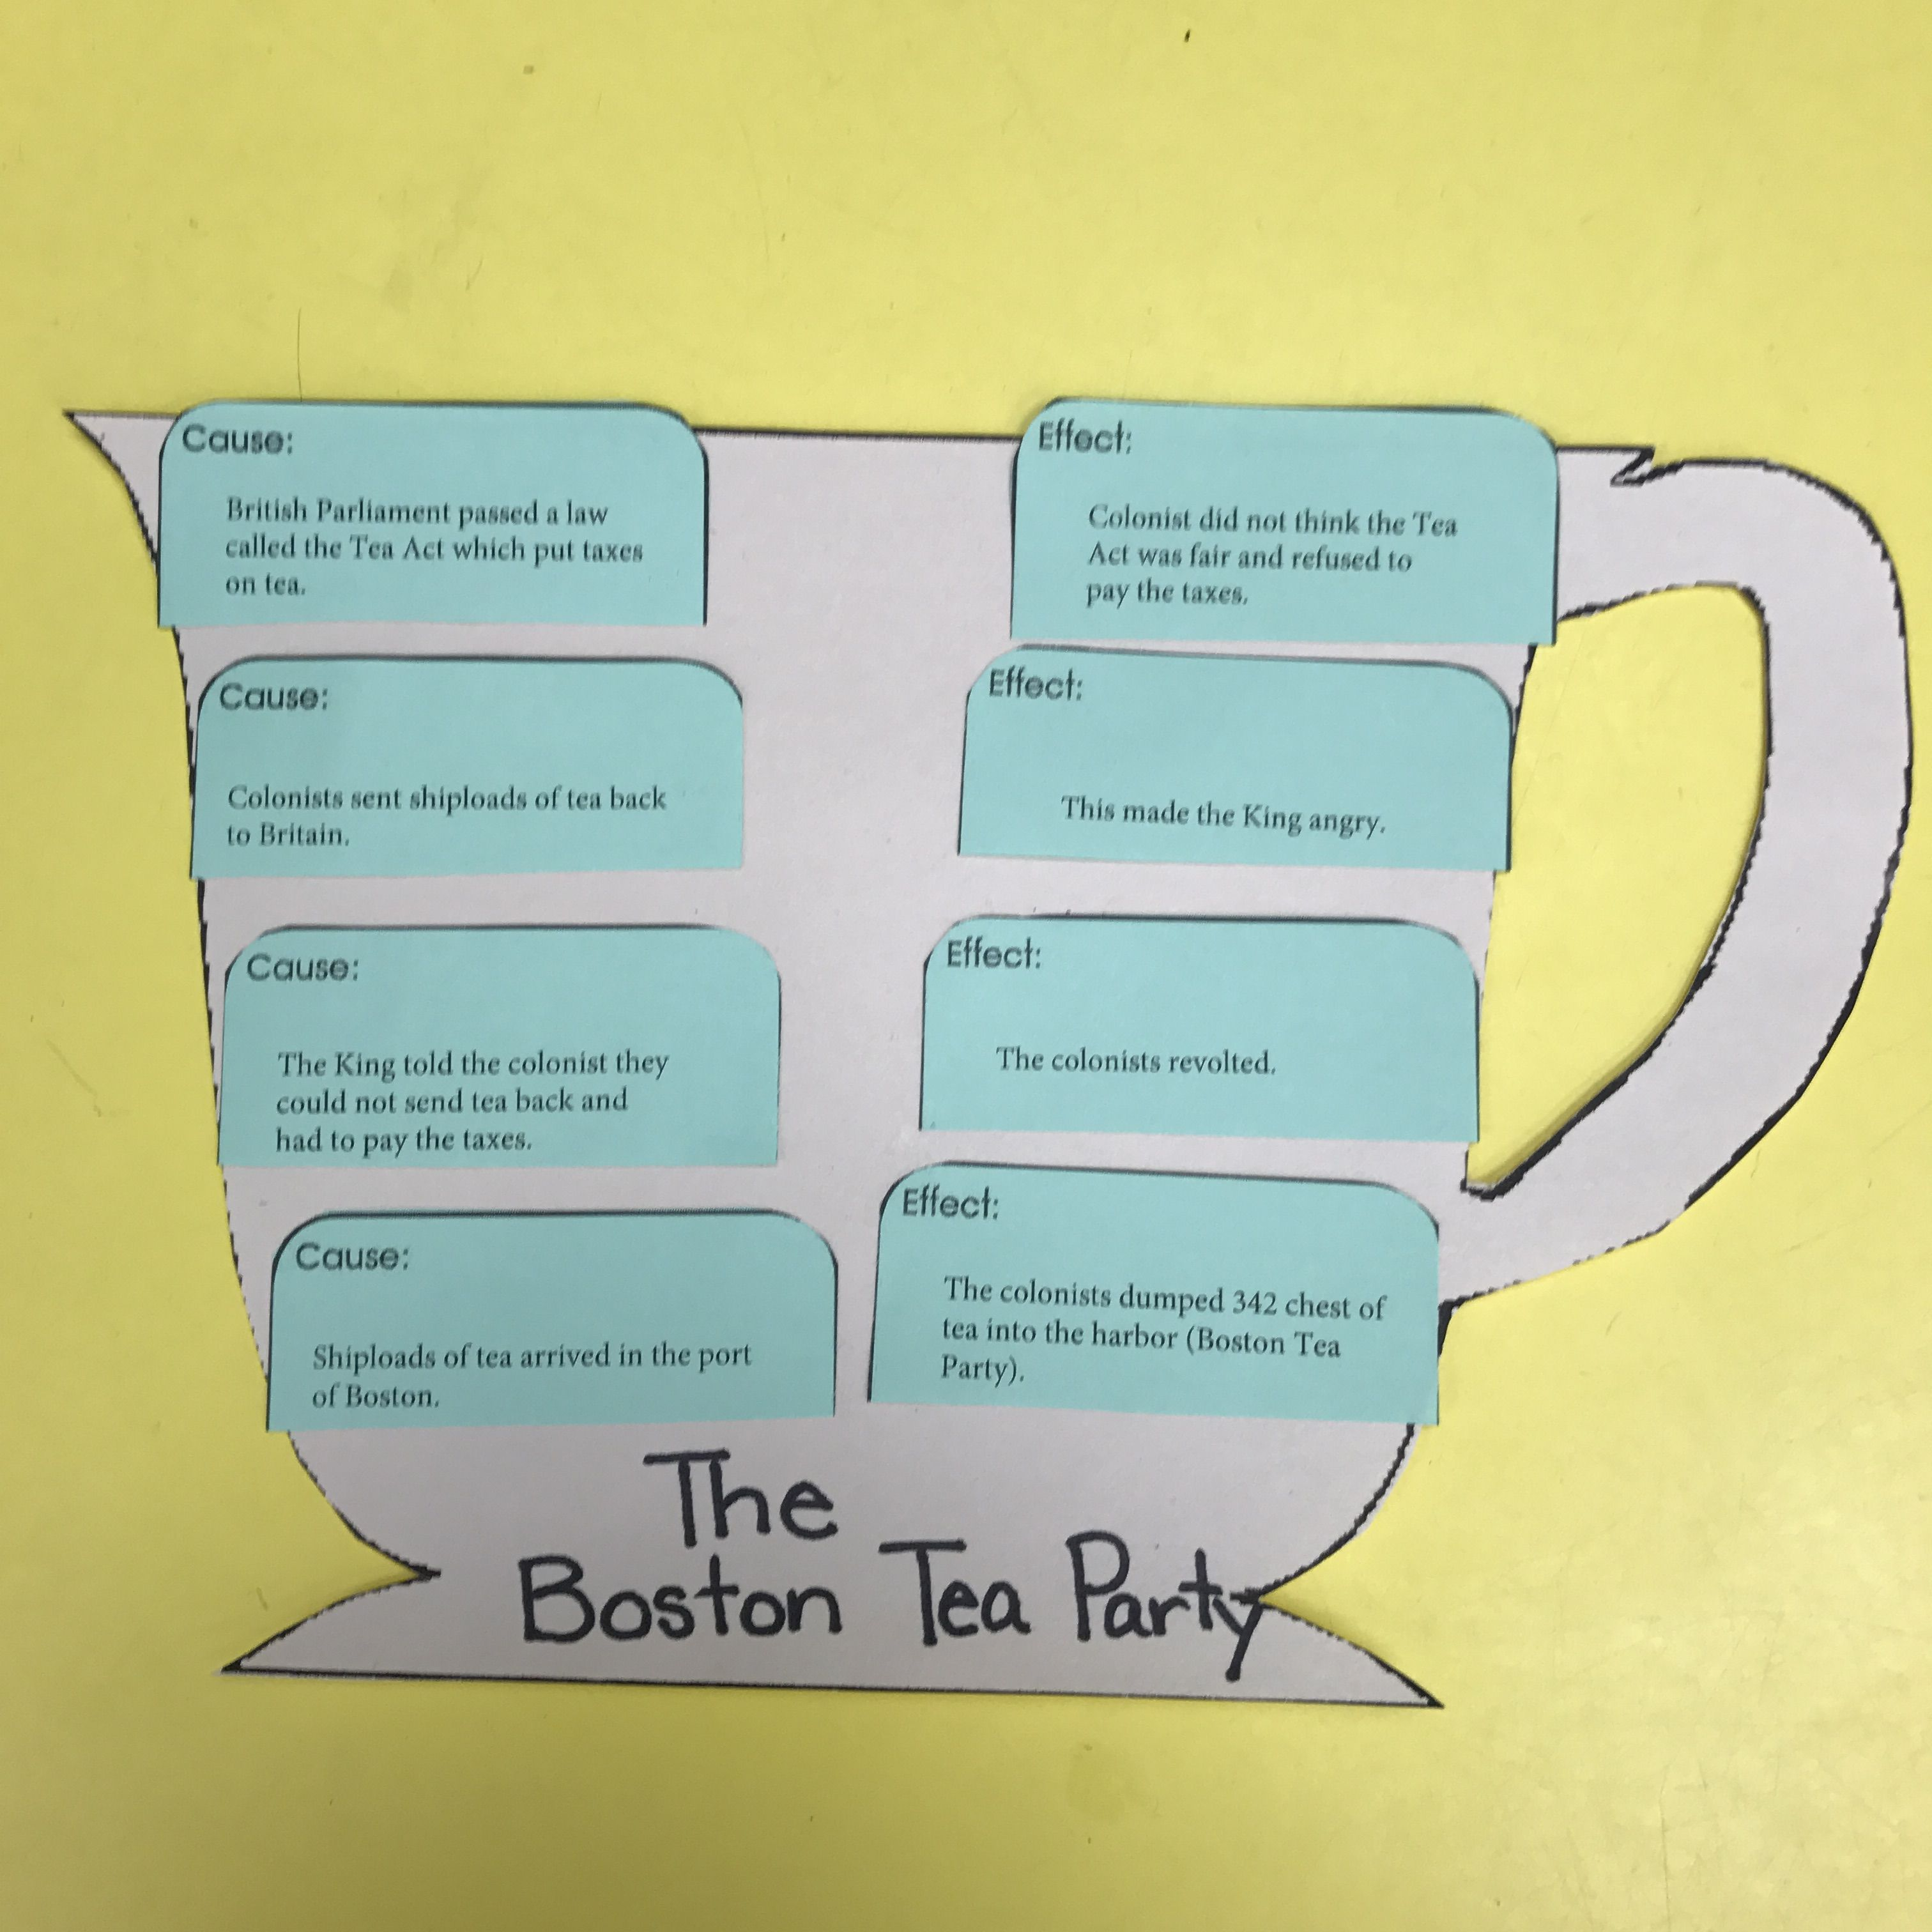 medium resolution of A cause and effect teacup graphic organizer of the Boston Tea Party.    Graphic organizers